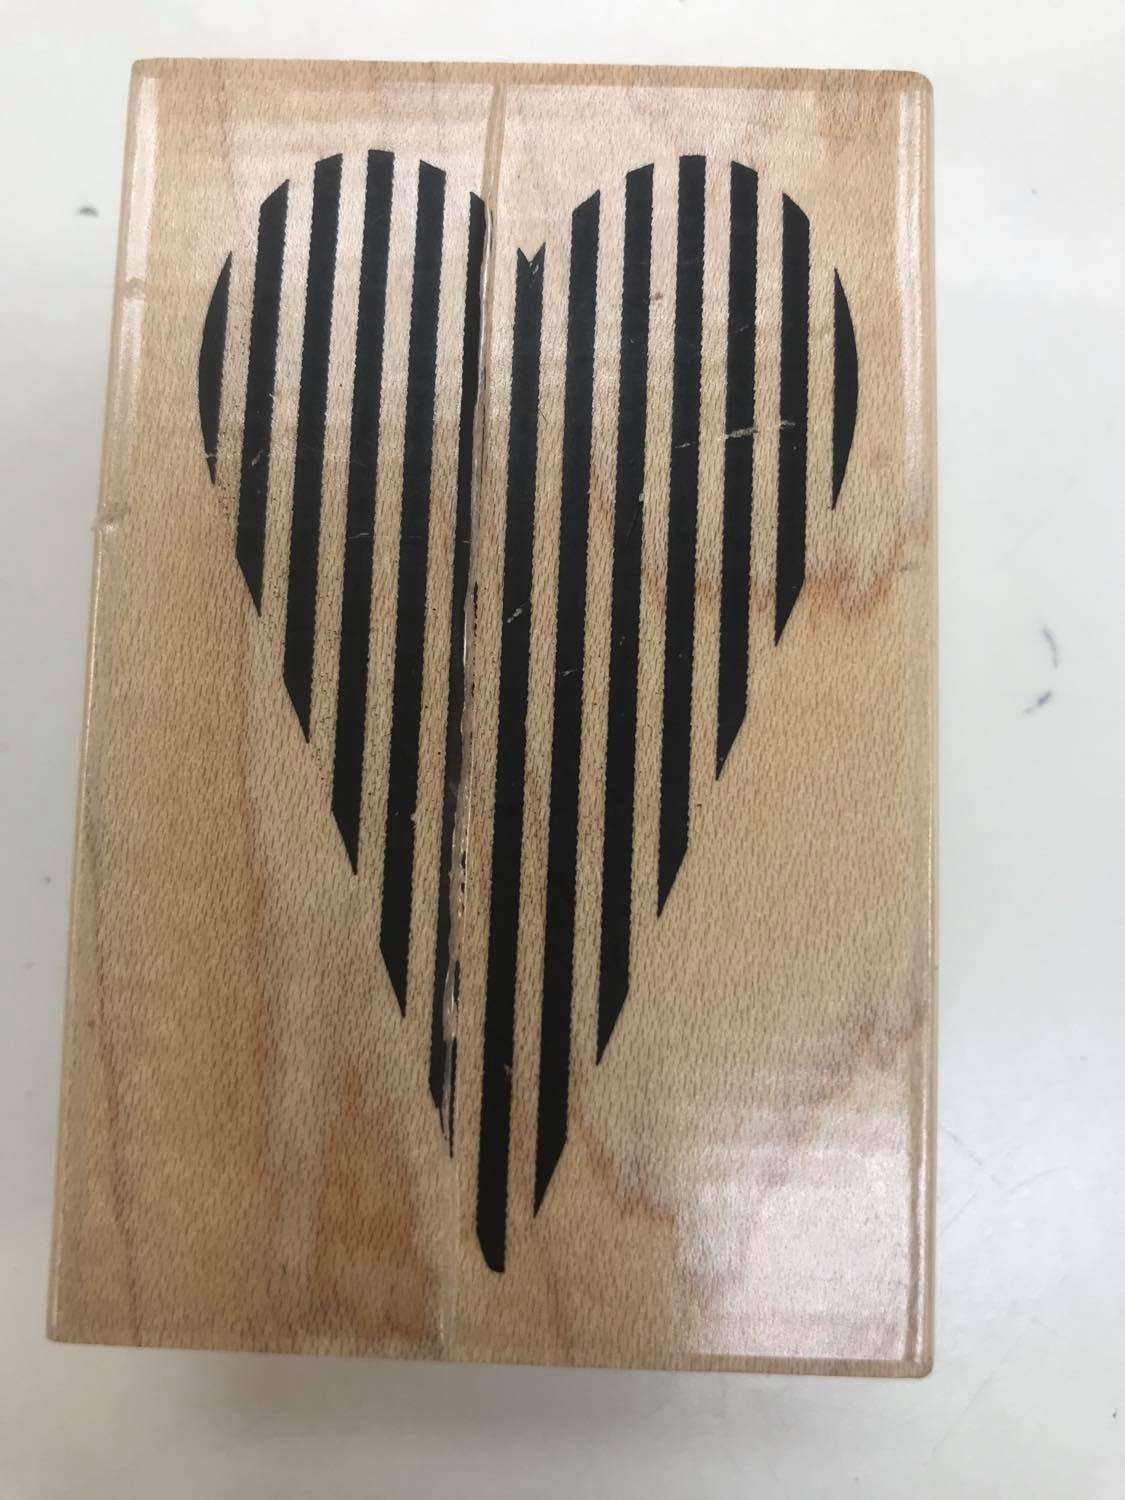 Thinly Striped Heart Stamp